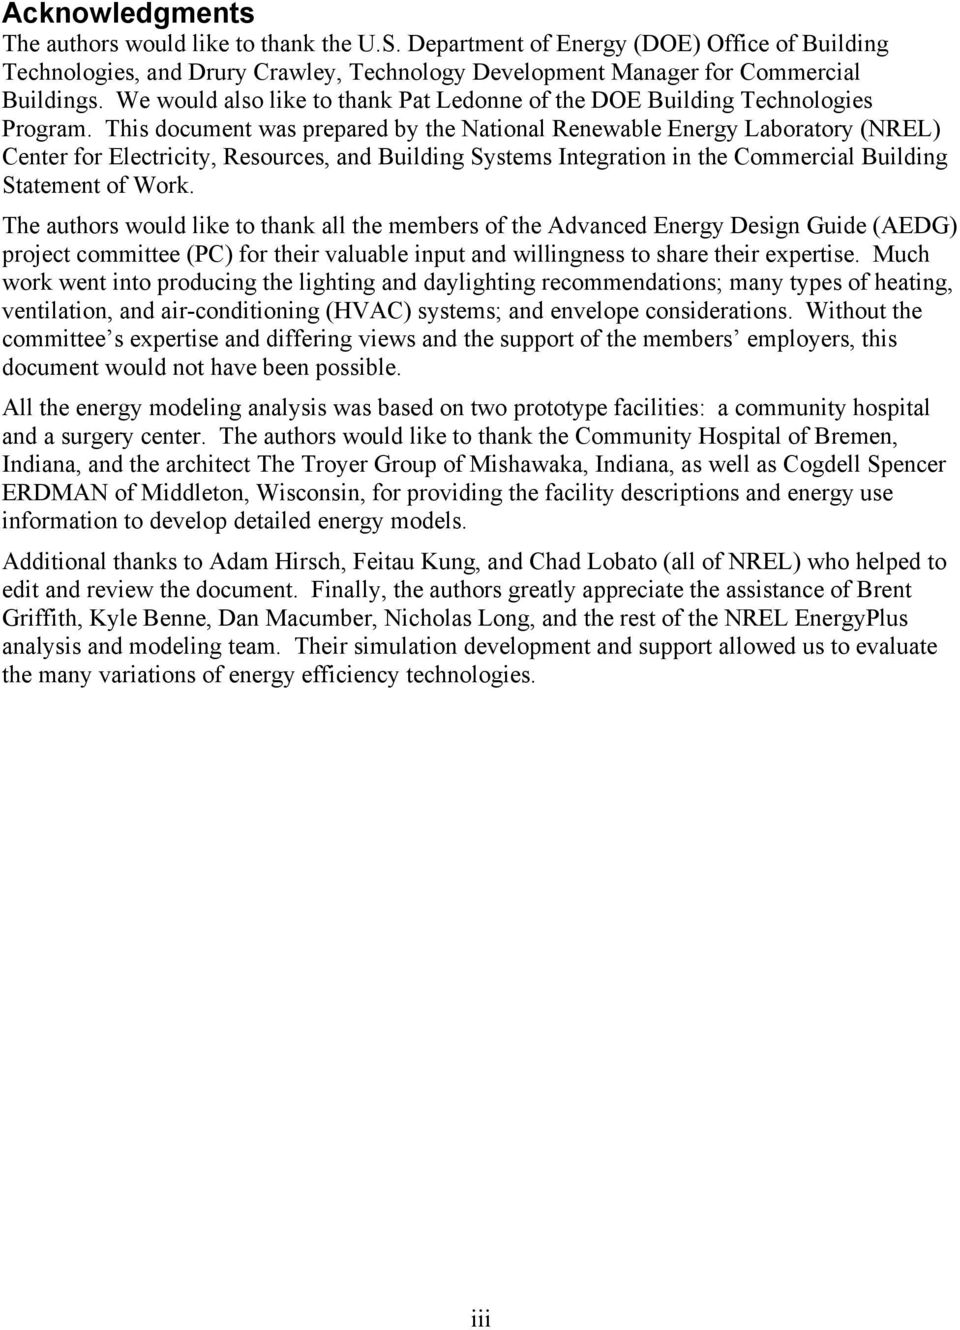 This document was prepared by the National Renewable Energy Laboratory (NREL) Center for Electricity, Resources, and Building Systems Integration in the Commercial Building Statement of Work.